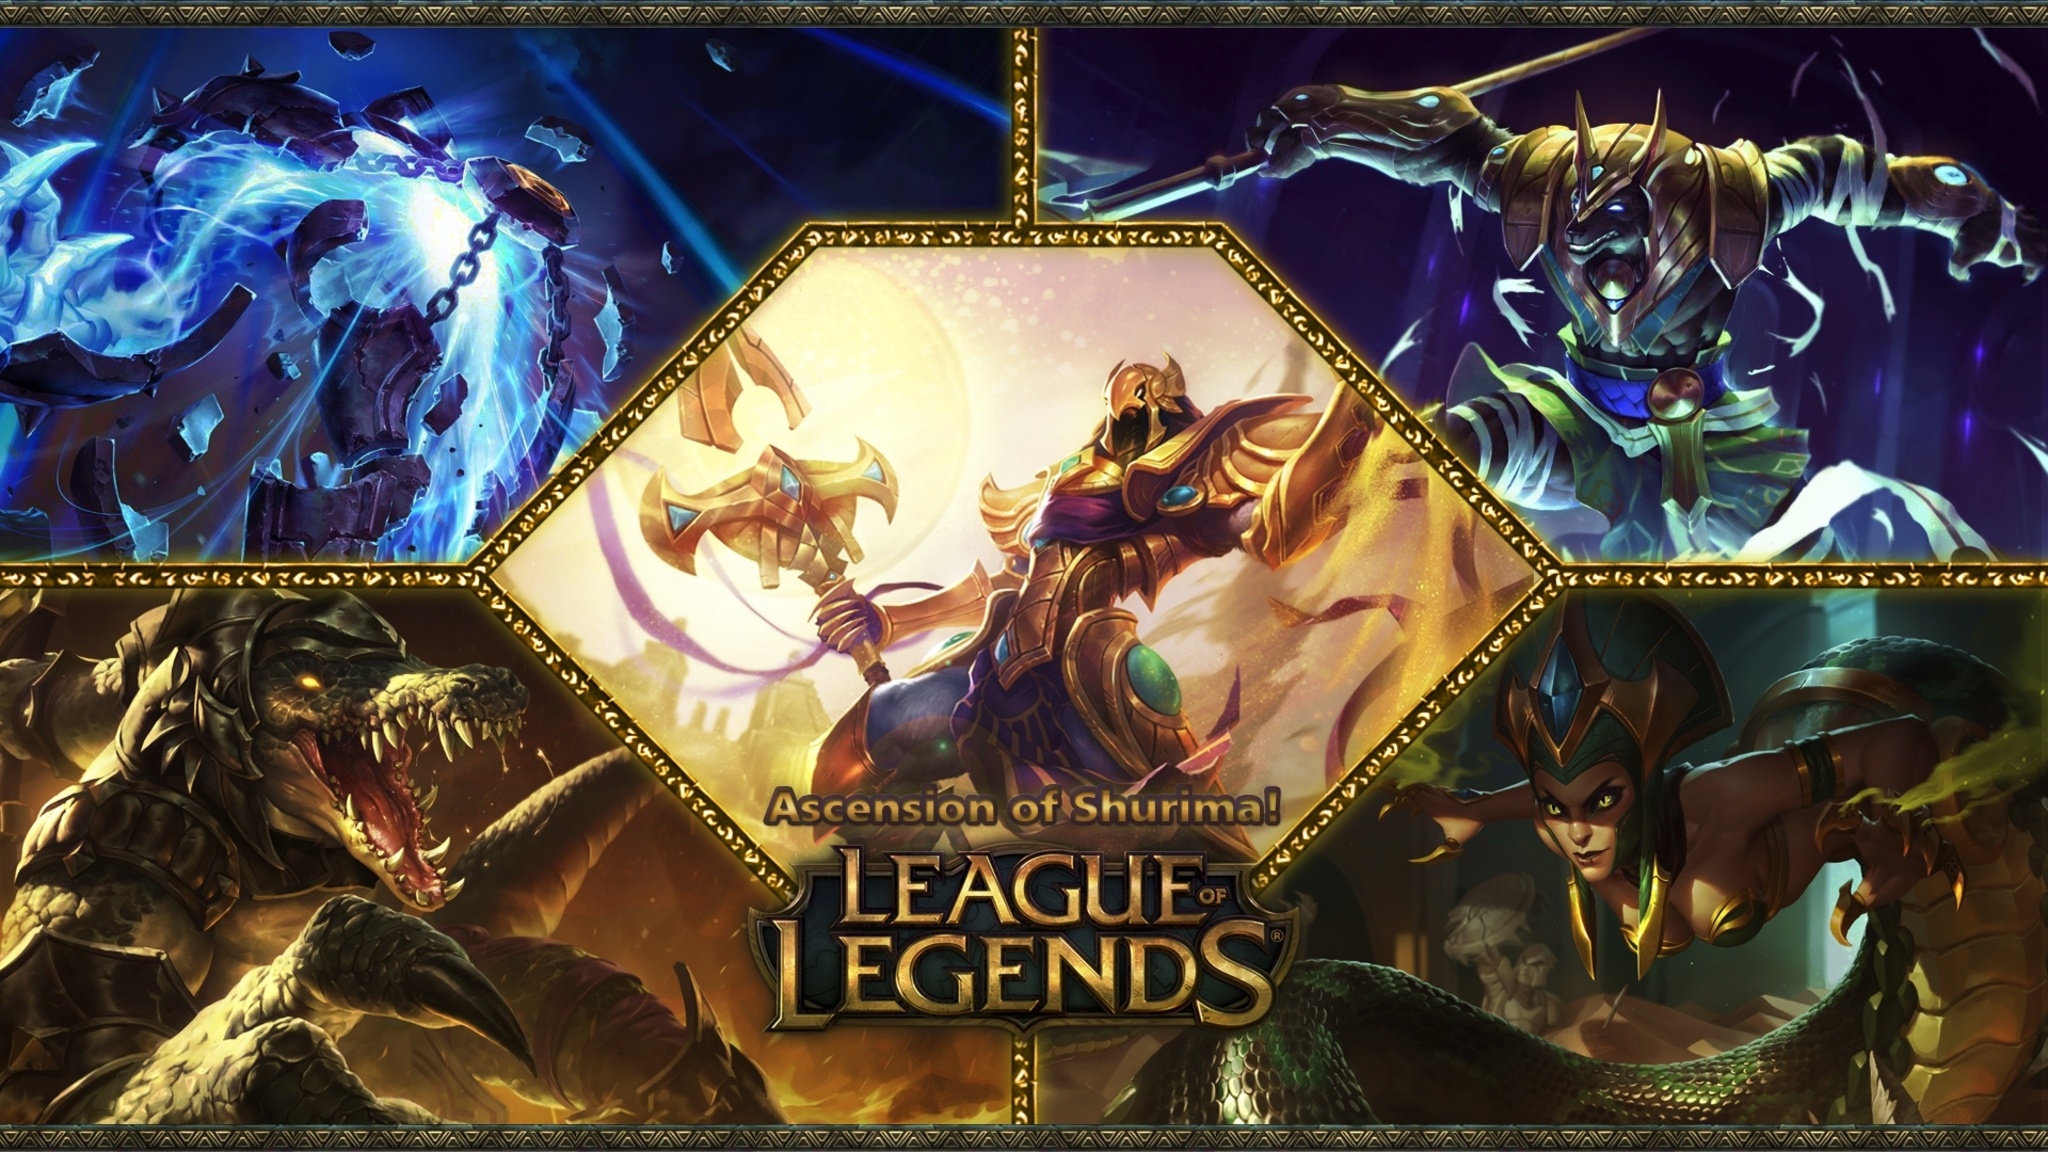 2048x1152 League Of Legends Game Poster 2048x1152